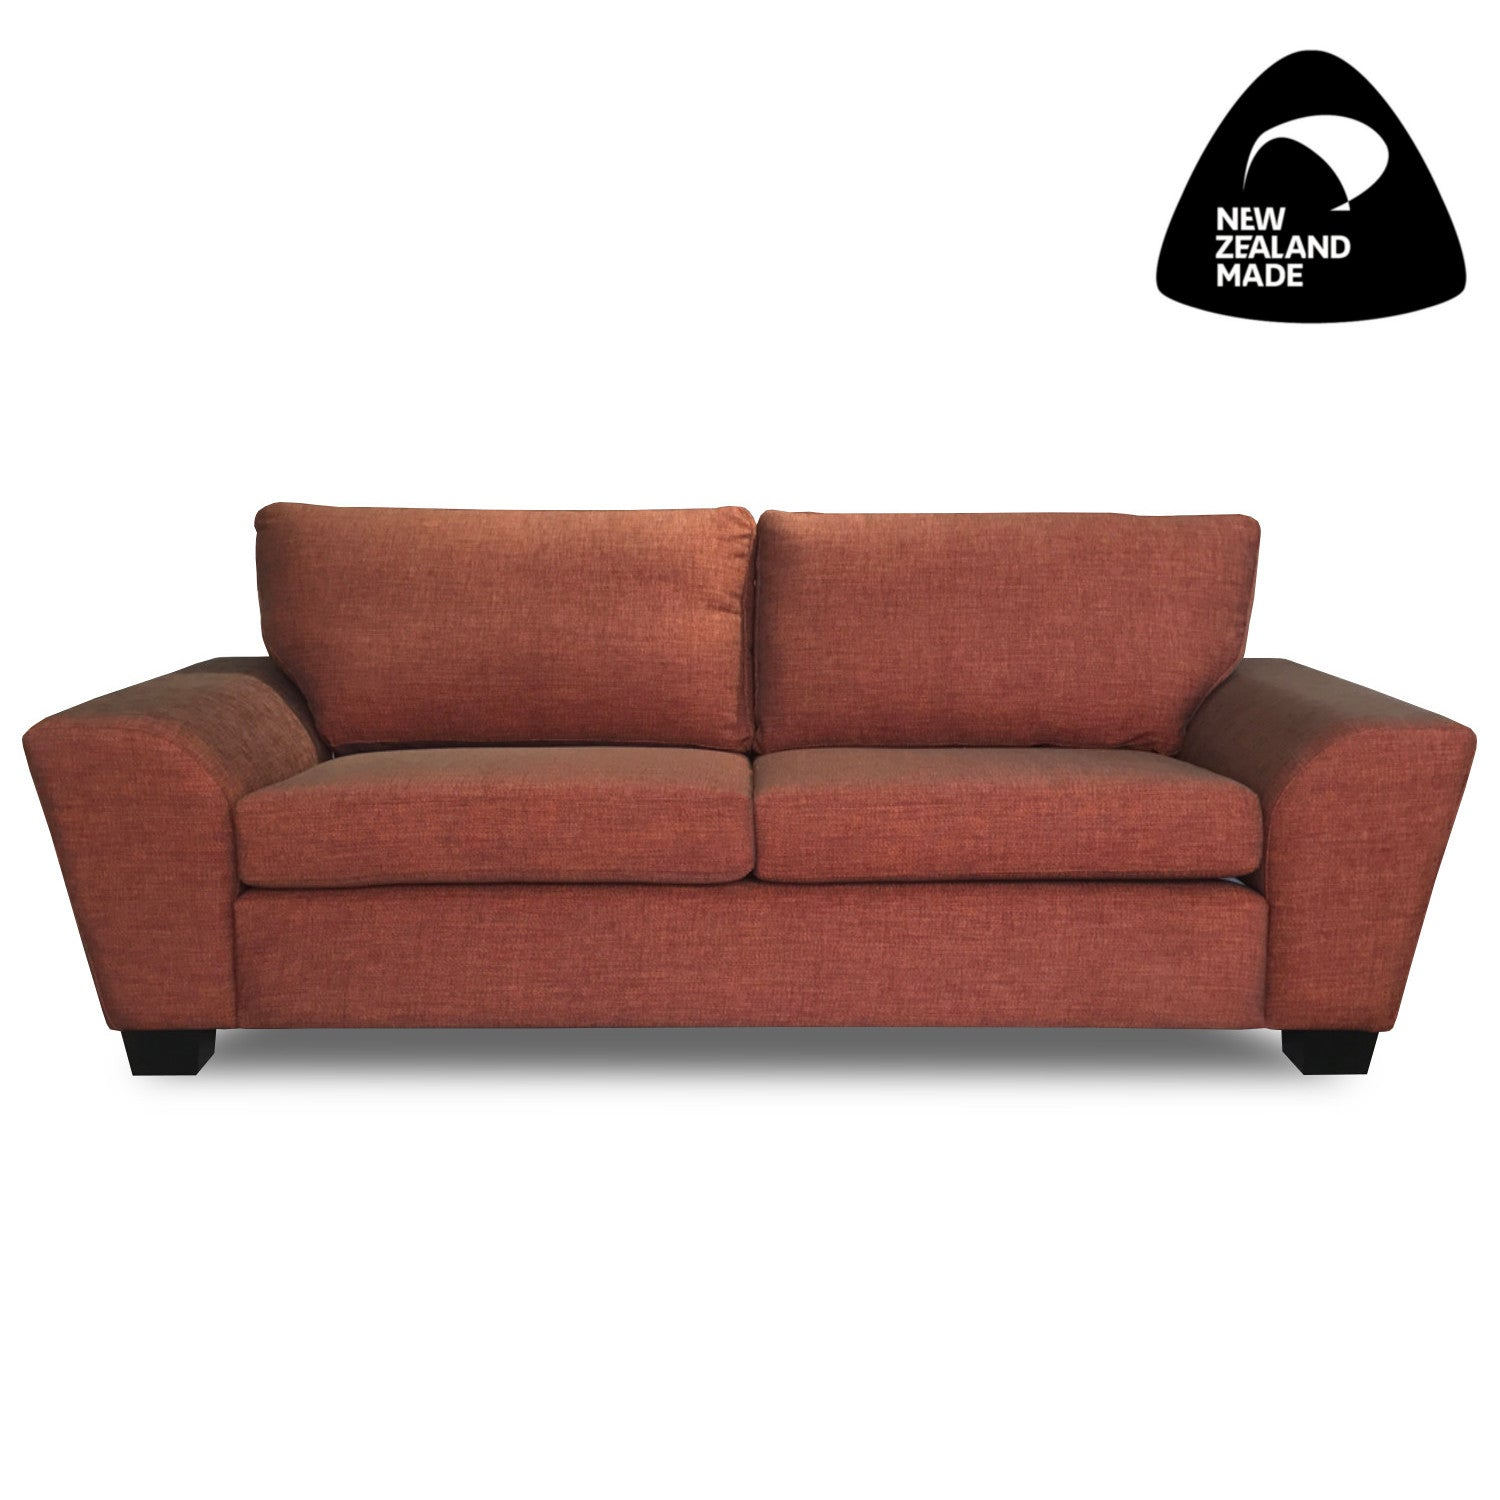 Marco 2 Seater Sofa - The Furniture Store & The Bed Shop